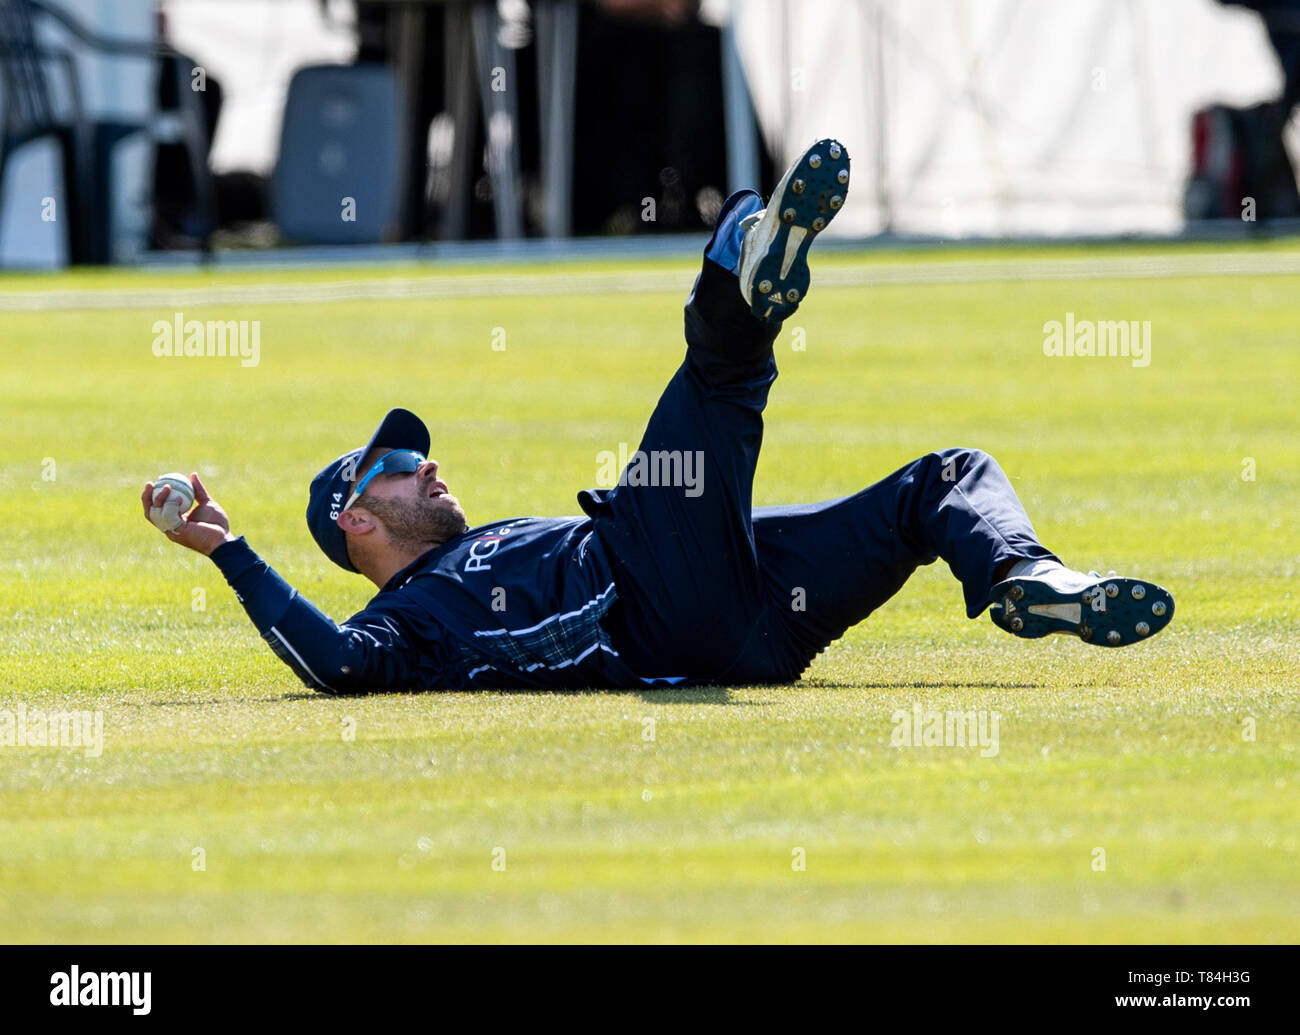 The Grange, Edinburgh, Midlothian, UK. 10th May 2019. Scotland v Afghanistan ODI. Pic shows: A brilliant catch by Scotland captain, Kyle Coetzer, to dismiss Afghanistan's Hazratullah Zazai, for 14 during the second innings as Scotland take on Afghanistan in a One Day International at the Grange, Edinburgh Credit: Ian Jacobs/Alamy Live News Stock Photo